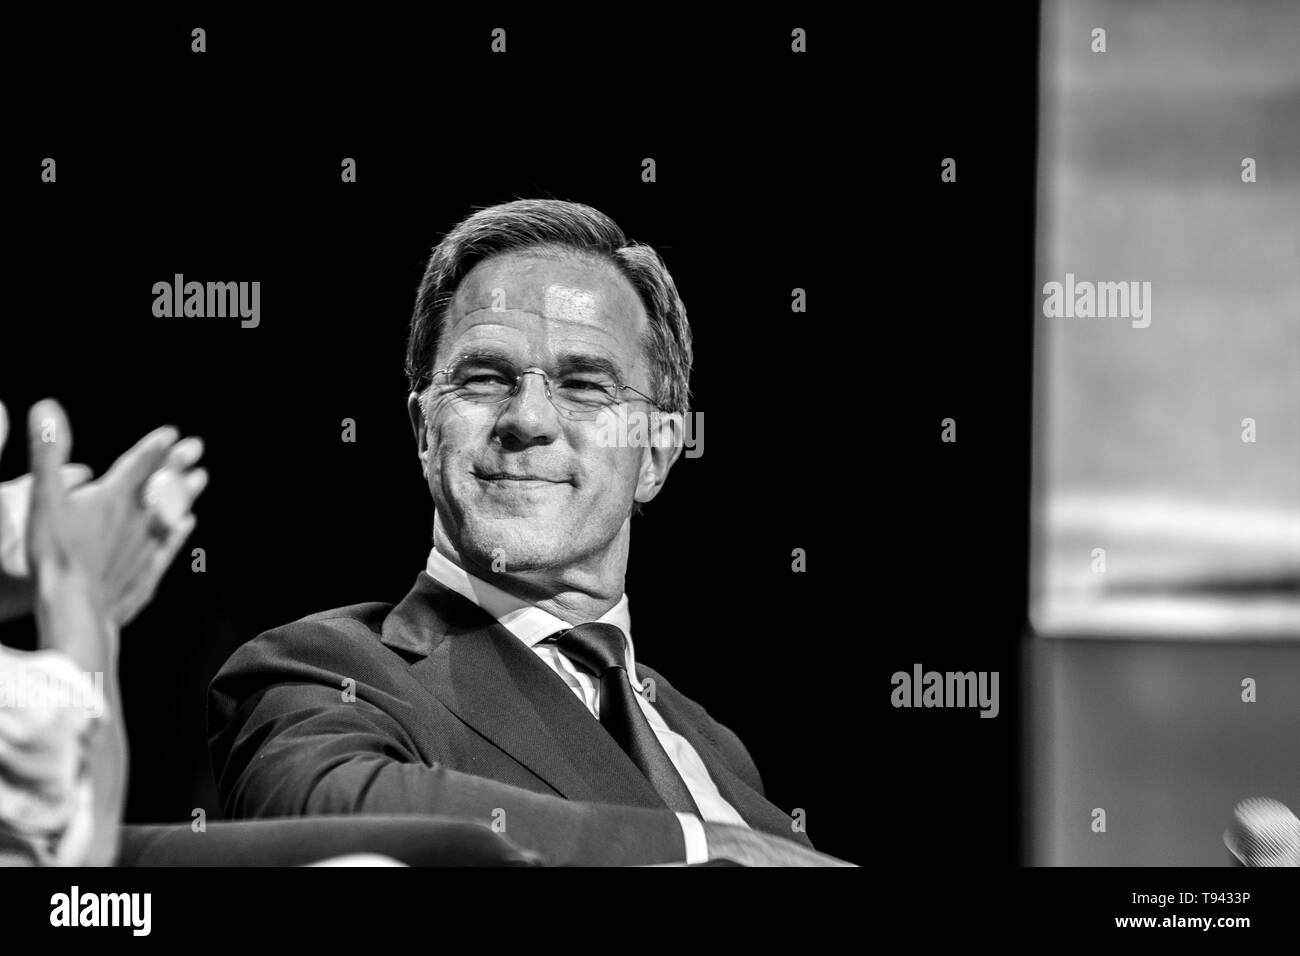 Prime Minister Mark Rutte At The World Retail Congress At The Rai Complex Amsterdam The Netherlands 2019 - Stock Image